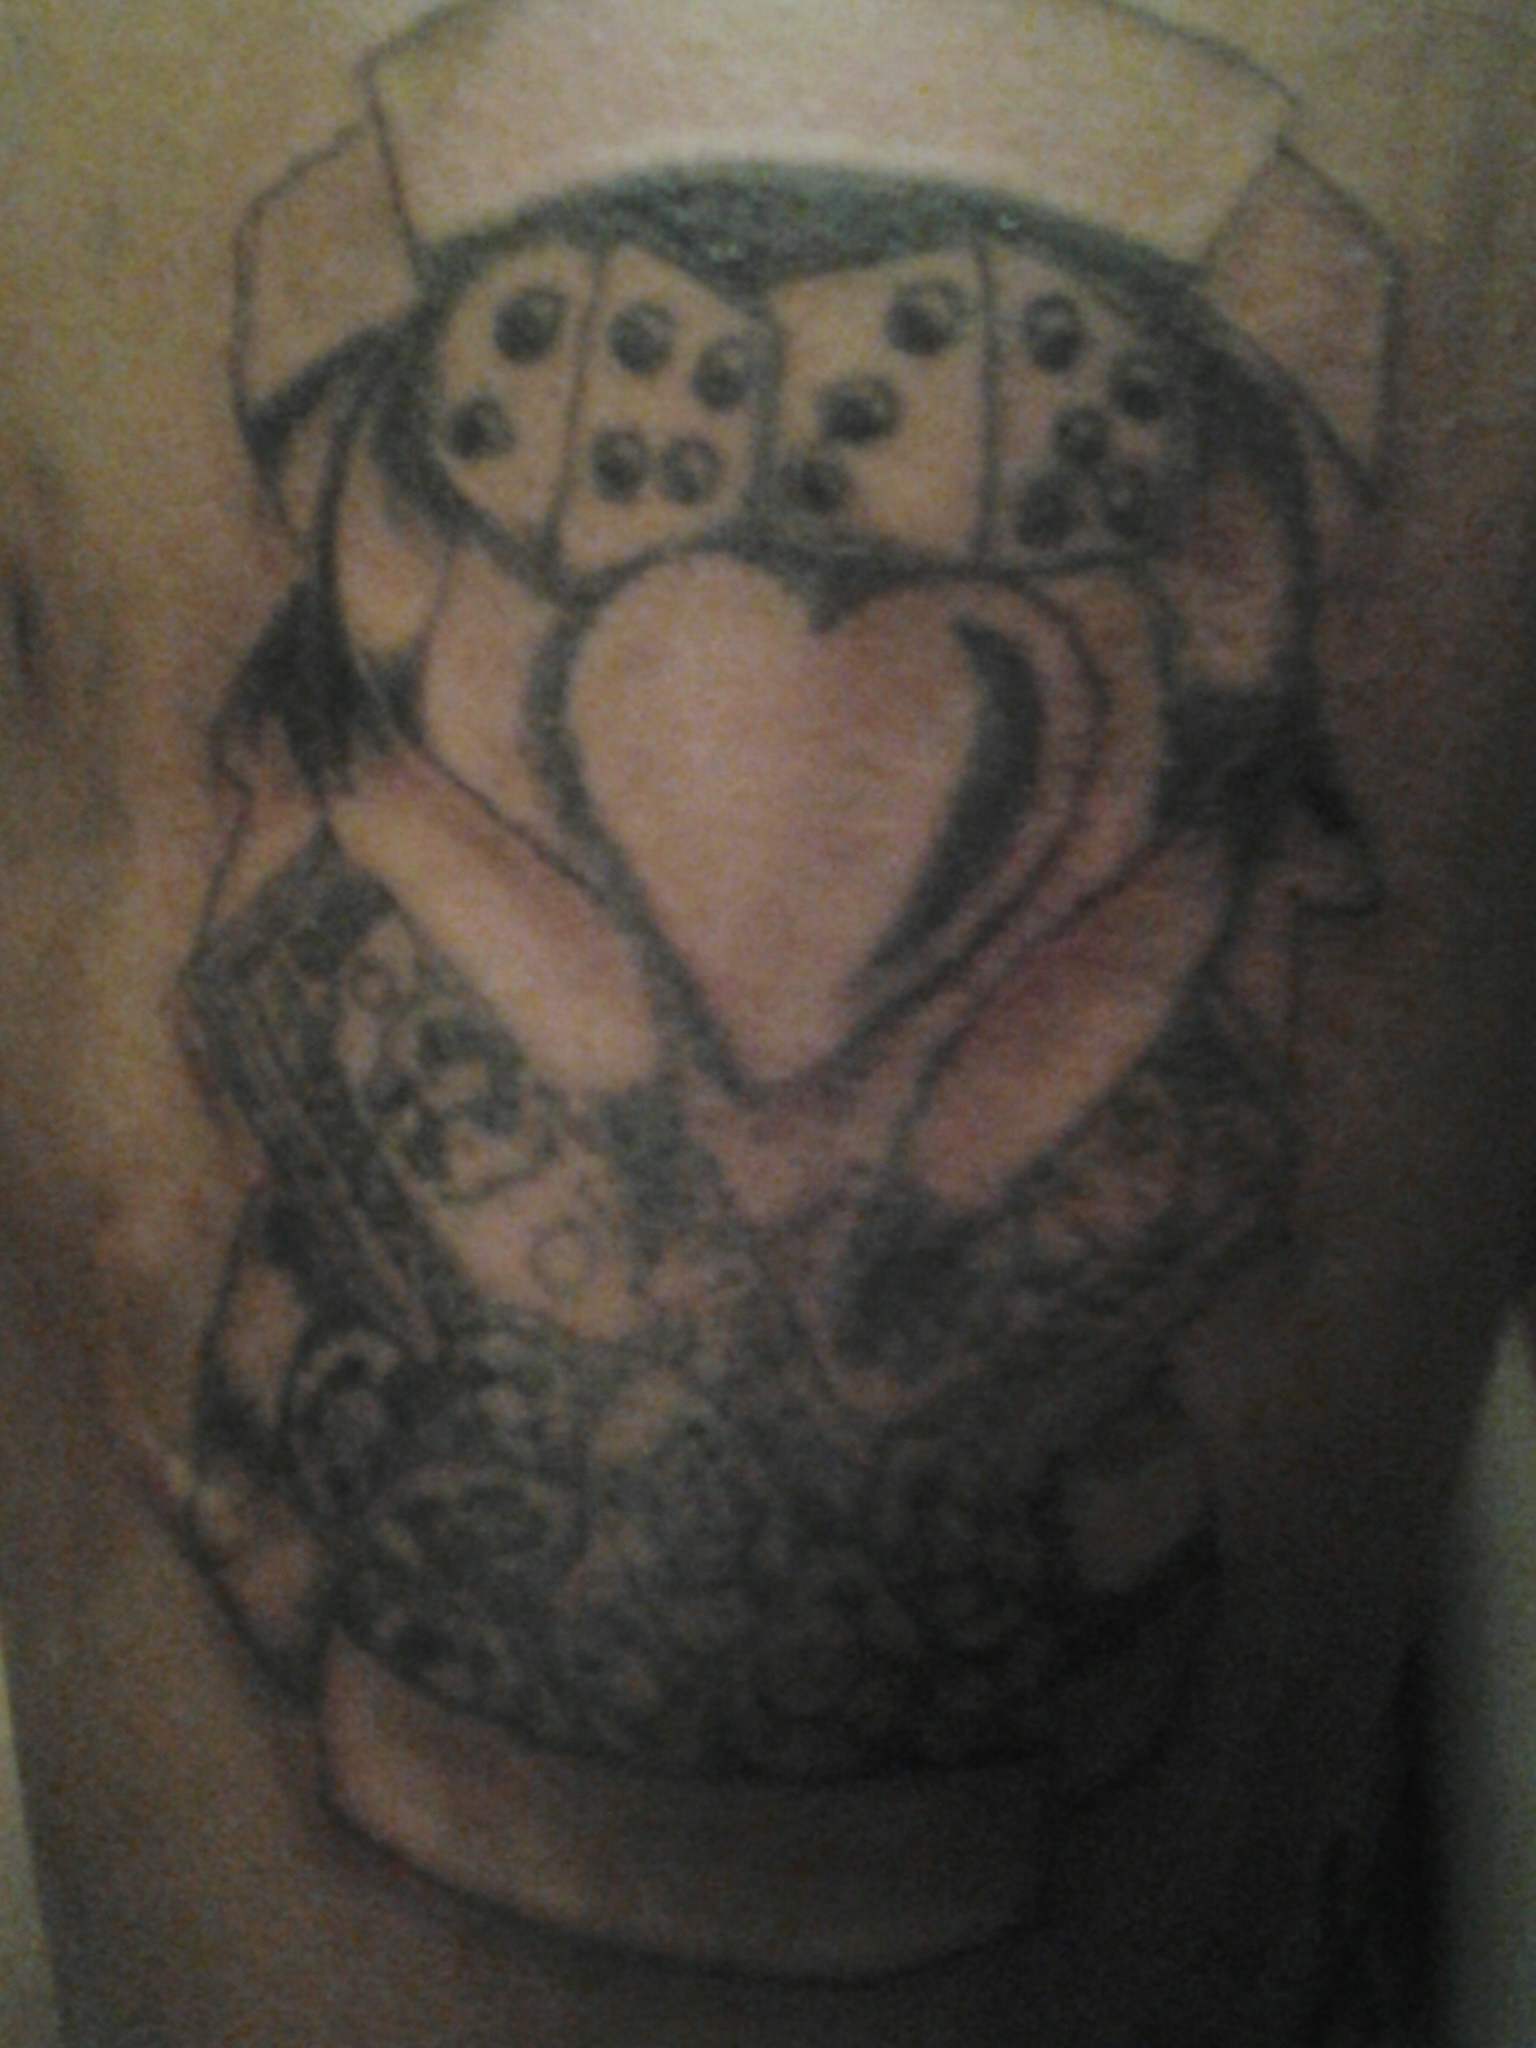 Heart And Dice With Banners Tattoo